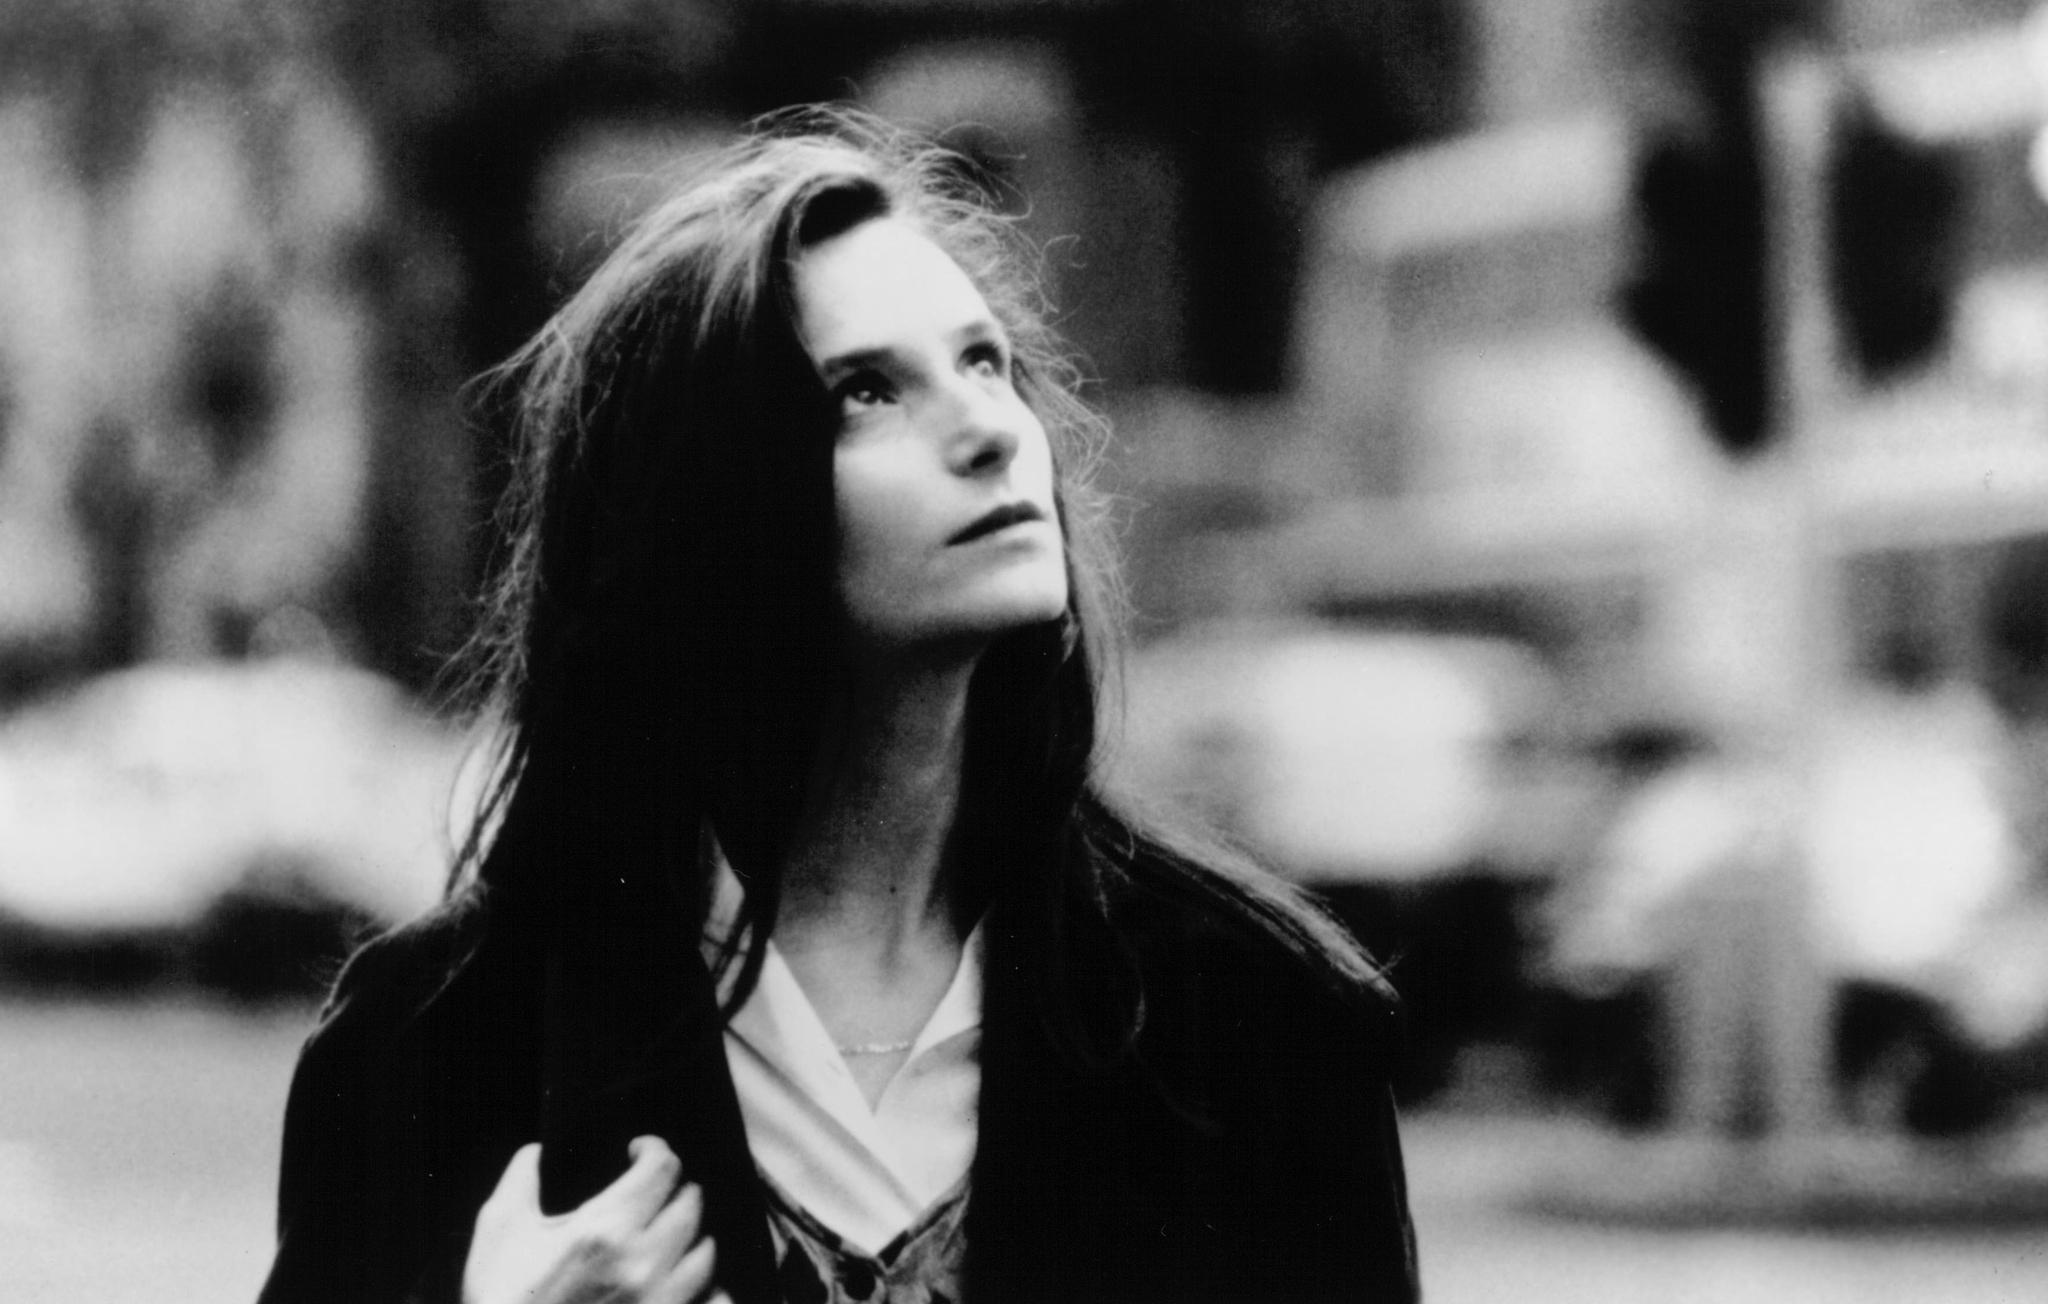 katrin cartlidge wikikatrin cartlidge dogville, katrin cartlidge wiki, katrin cartlidge death, katrin cartlidge how did she die, katrin cartlidge youtube, katrin cartlidge imdb, katrin cartlidge obituary, katrin cartlidge foundation, katrin cartlidge gestorben, katrin cartlidge wikipedia